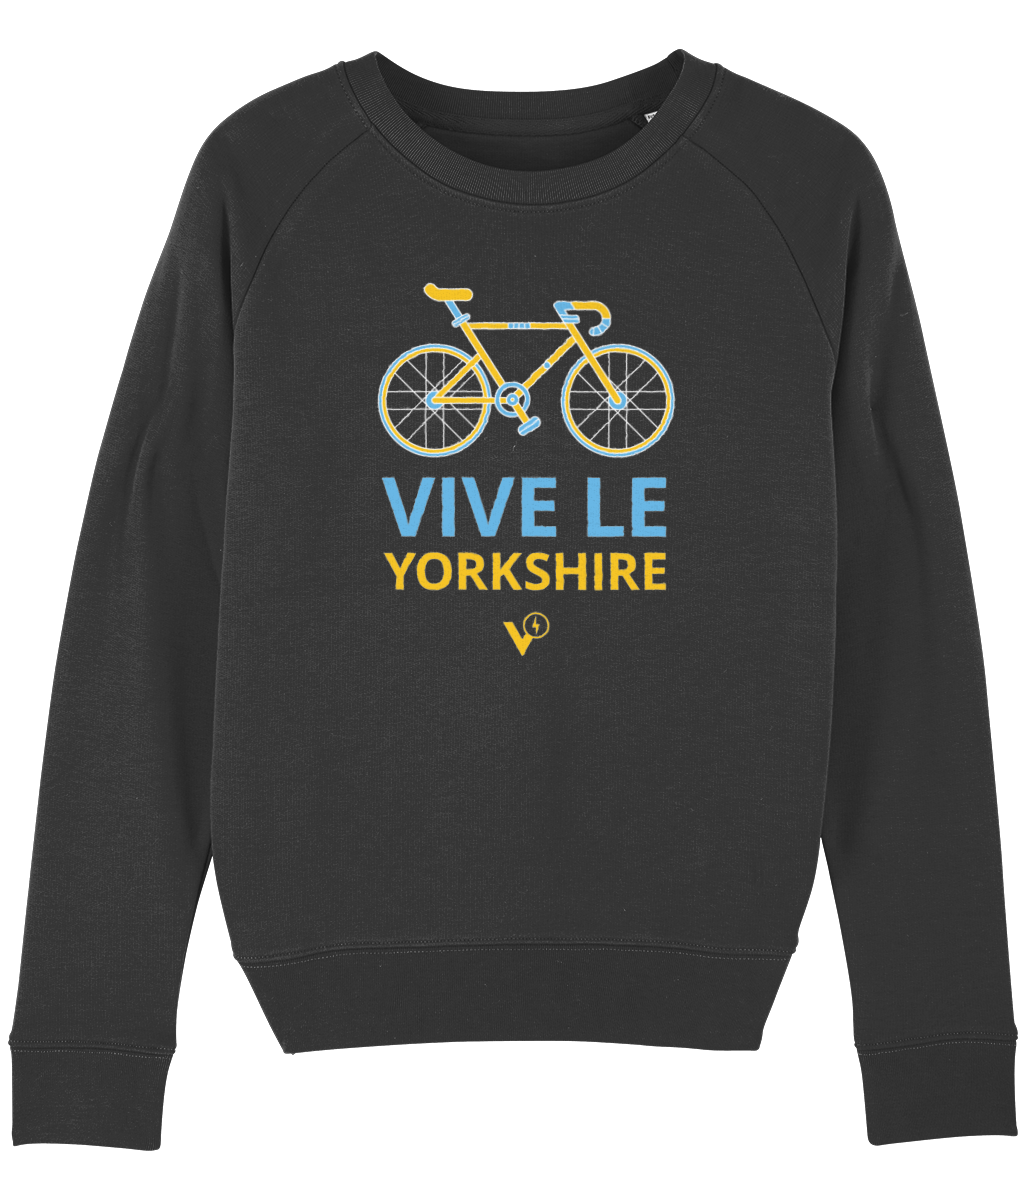 VIVE LE YORKSHIRE WOMEN'S CYCLING SWEATSHIRT